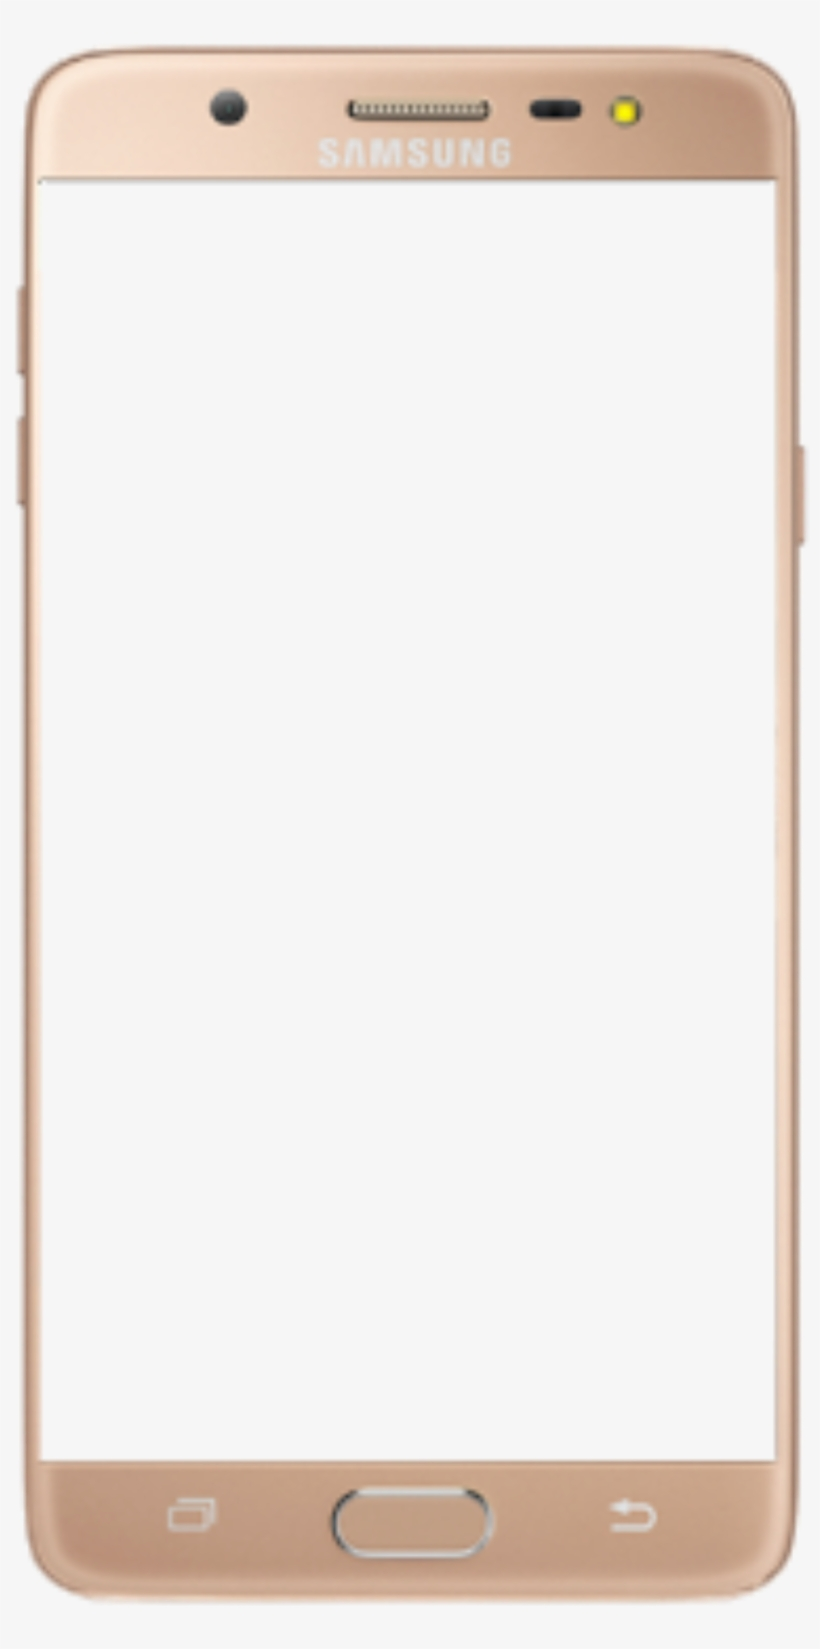 Mobile Phone Frame Download, transparent png #2584227